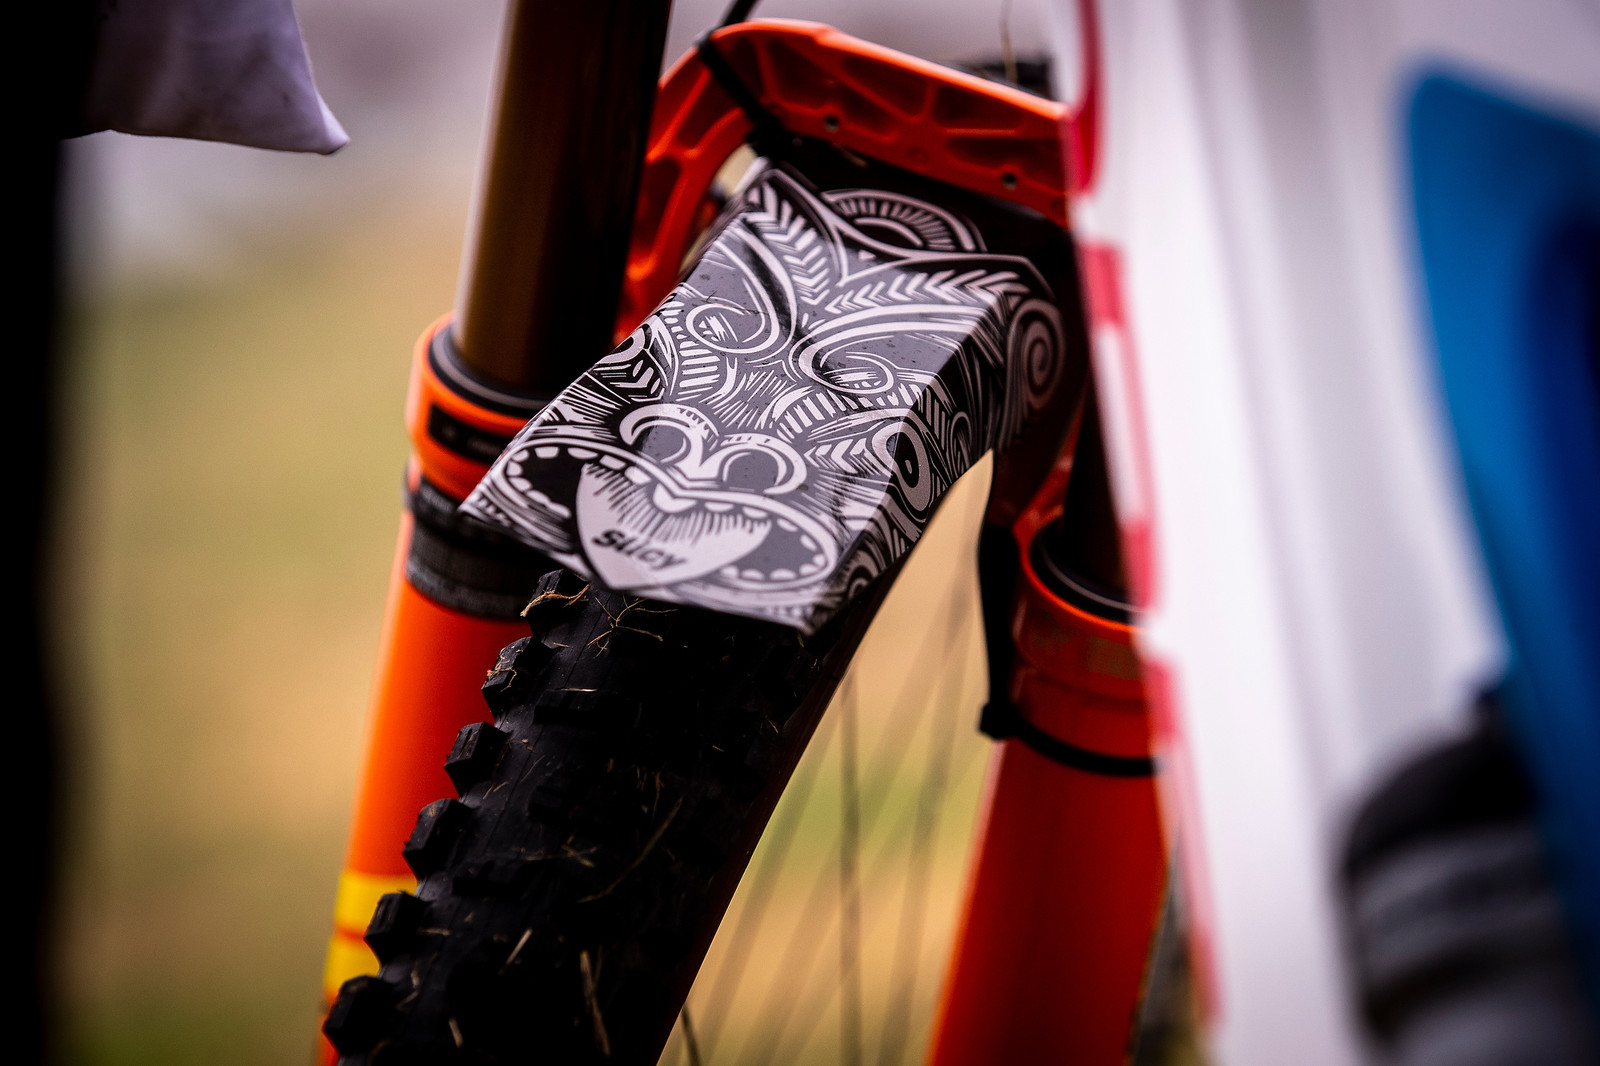 Fender Graphics - 2019 Enduro World Series Crankworx Rotorua - Mountain Biking Pictures - Vital MTB